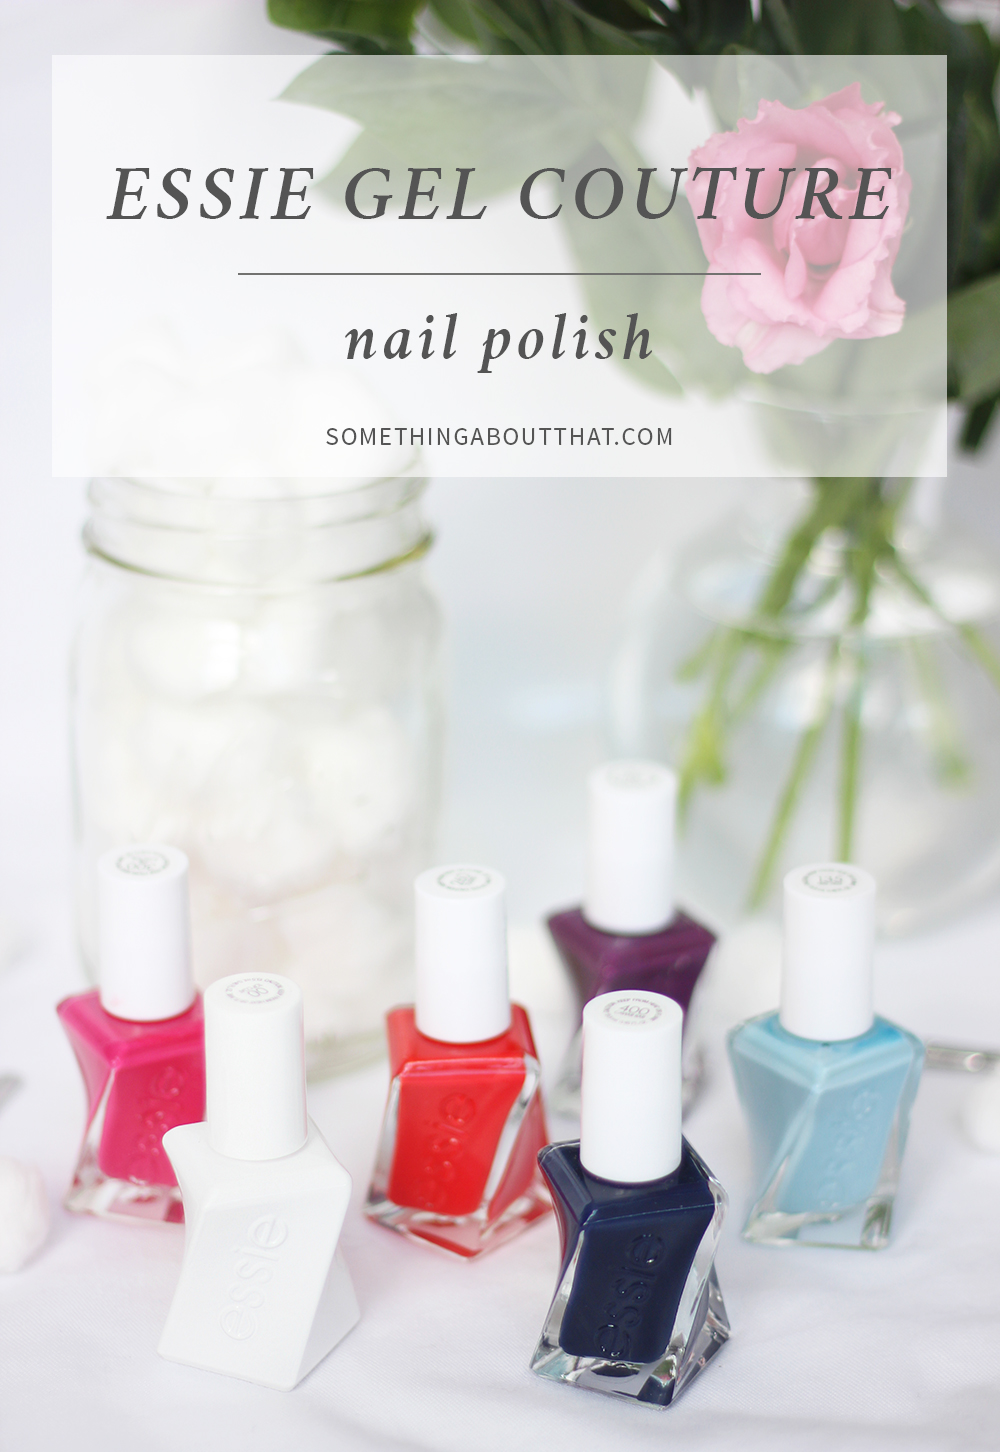 essie gel couture Nail Polish - Review - Something About That | Toronto Lifestyle and Fashion Blog